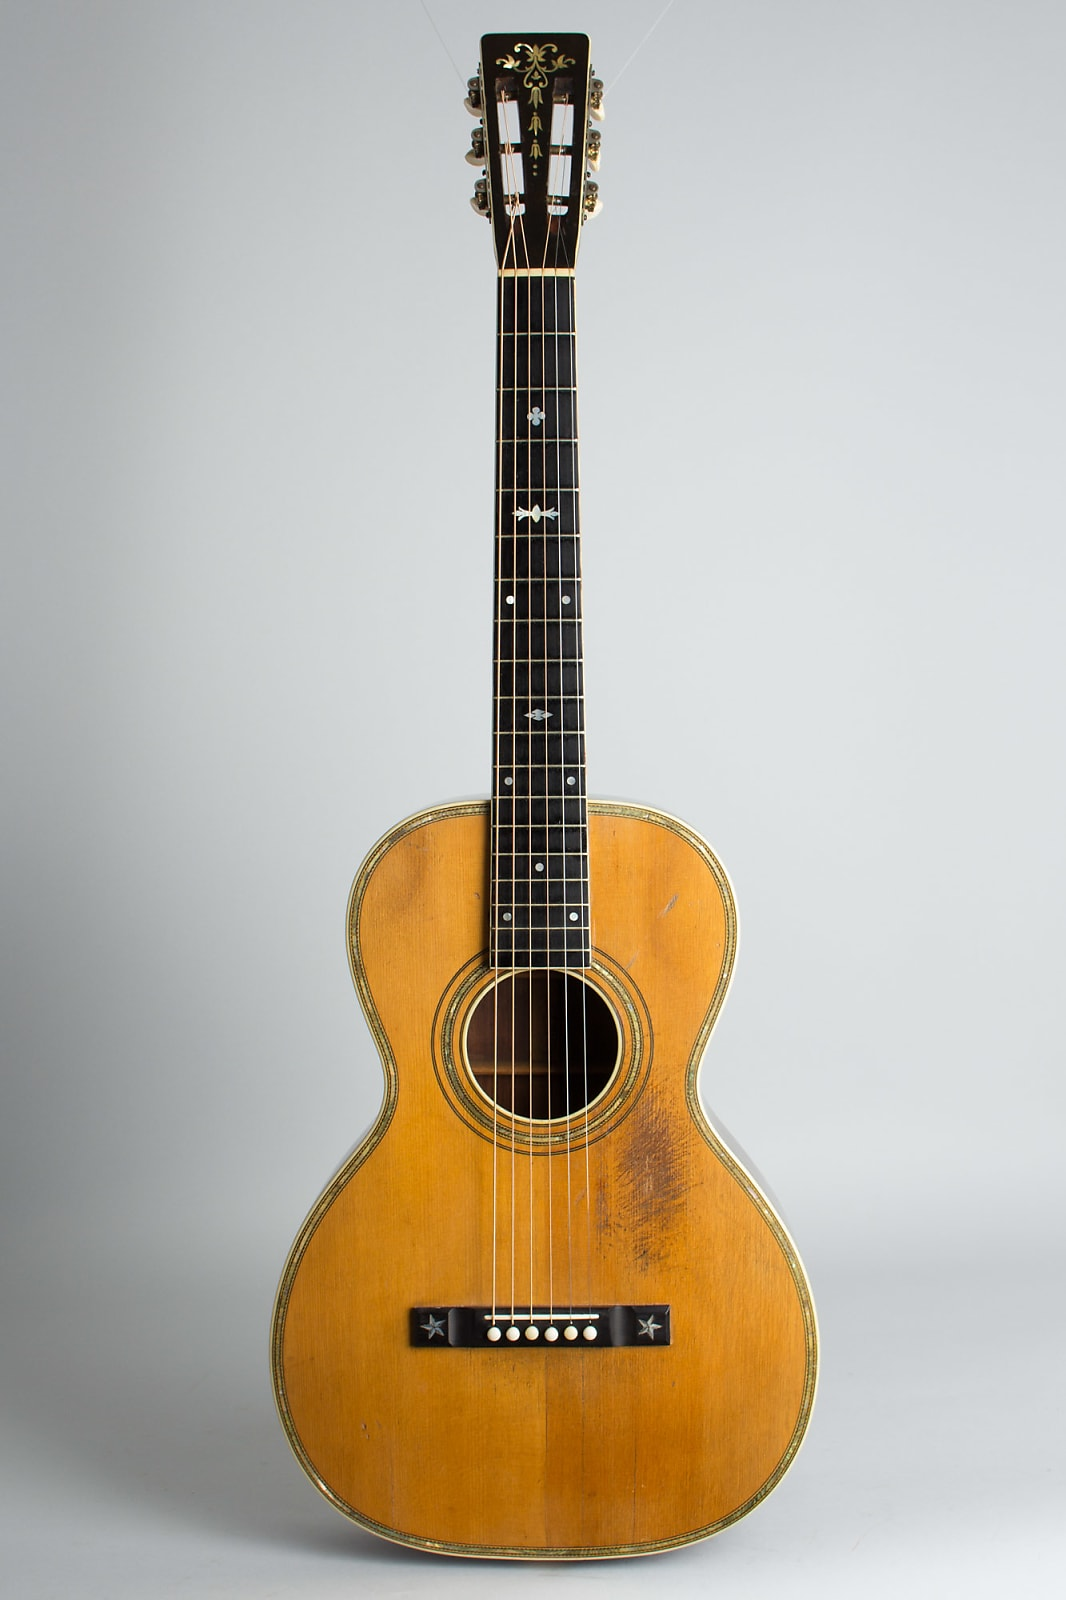 Wm. Stahl Solo Style # 8 Flat Top Acoustic Guitar,  made by Larson Brothers,  c. 1926, ser. #32540, black hard shell case.